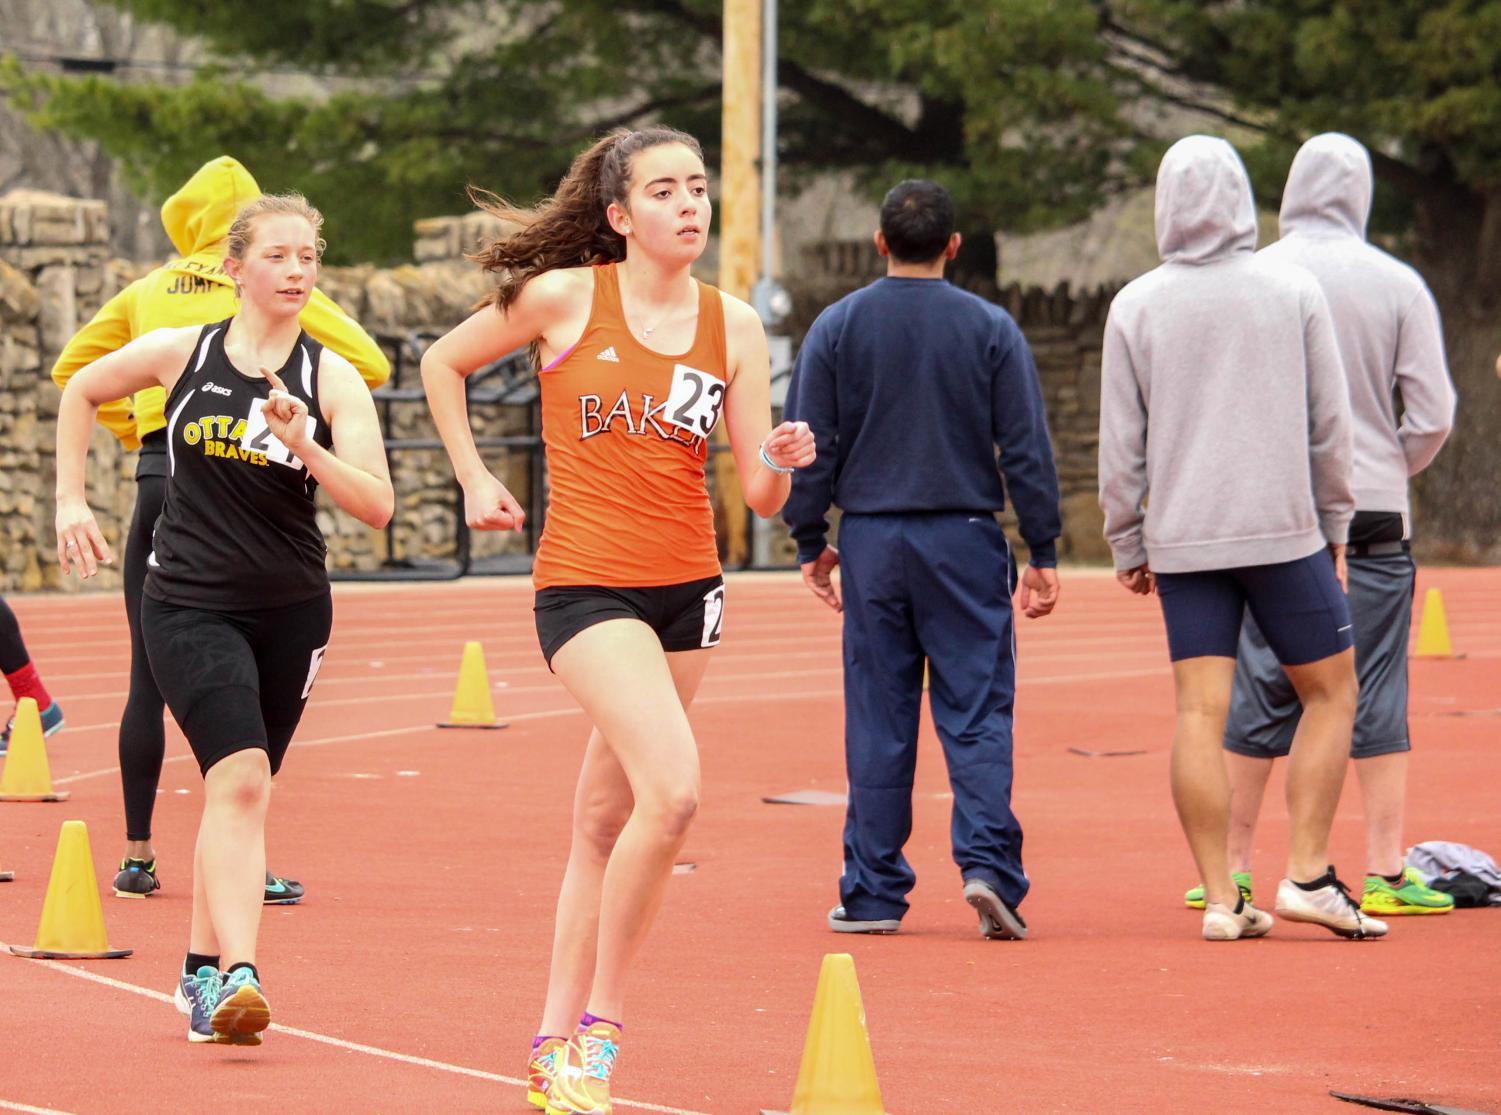 Senior Caitlin Apollo competes in the women's 3,000-meter race walk last season. Apollo is one of three Baker race walkers to qualify for the indoor national meet.